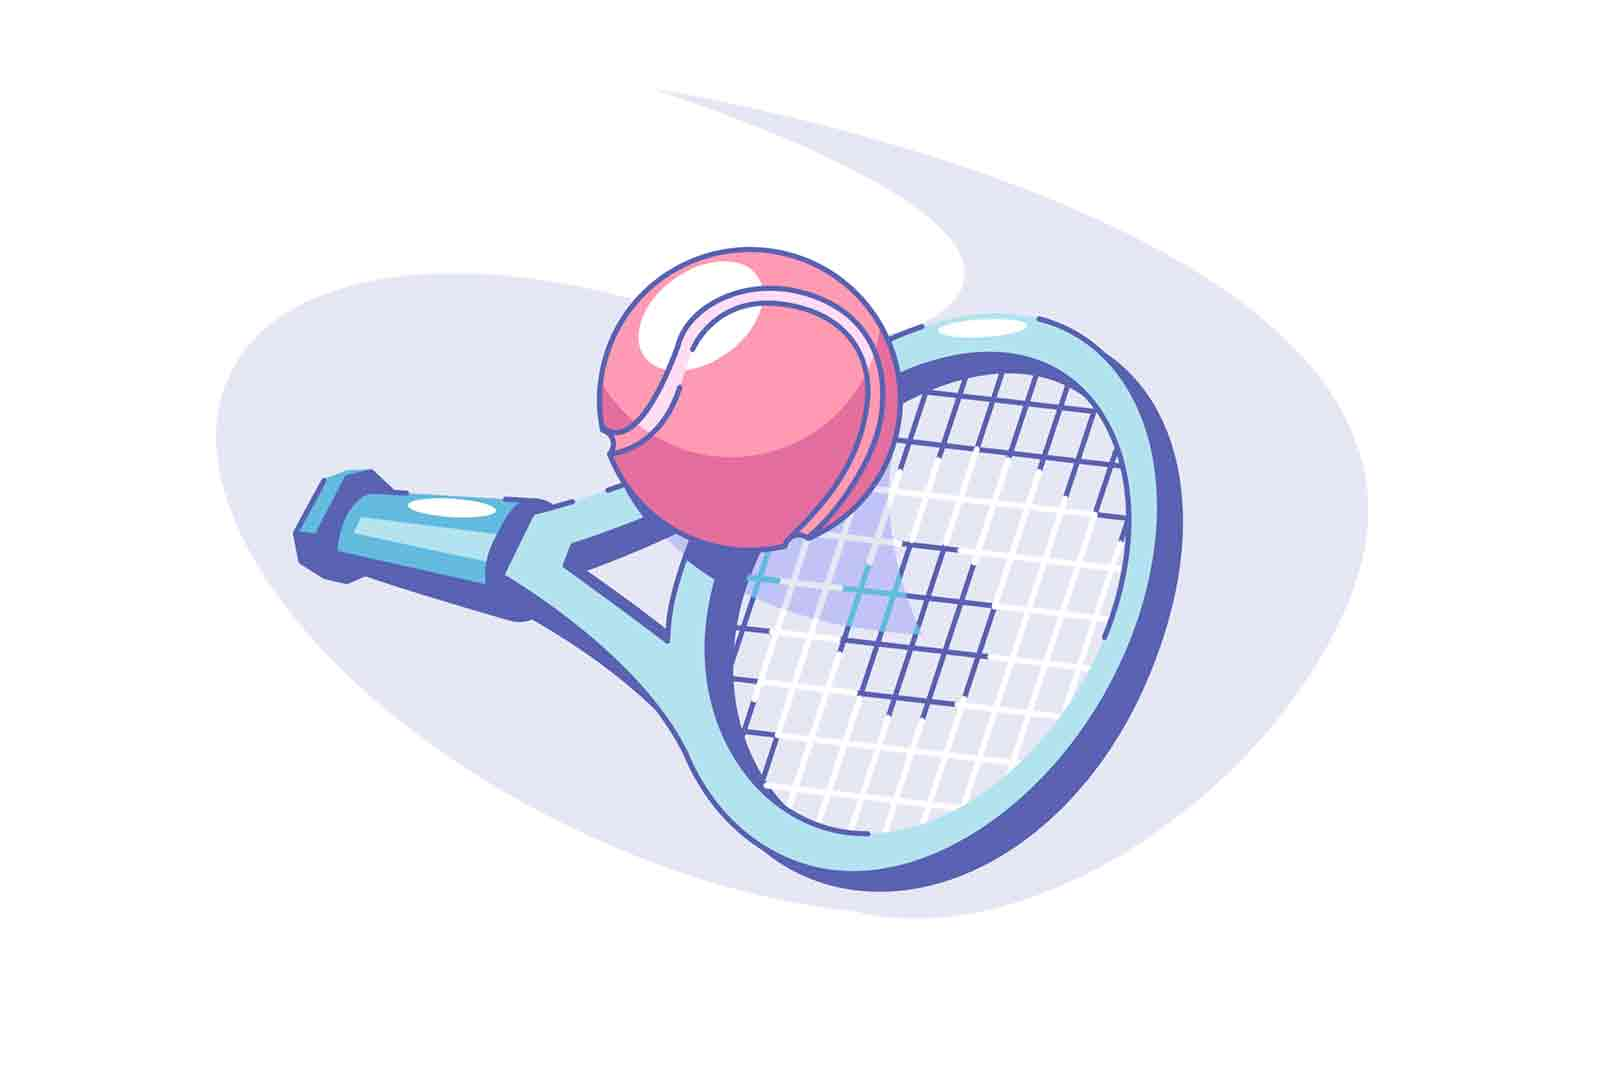 Tennis sport game vector illustration. Ball and racket flat style. Equipment for competition or tournament. Sport game and active lifestyle concept.